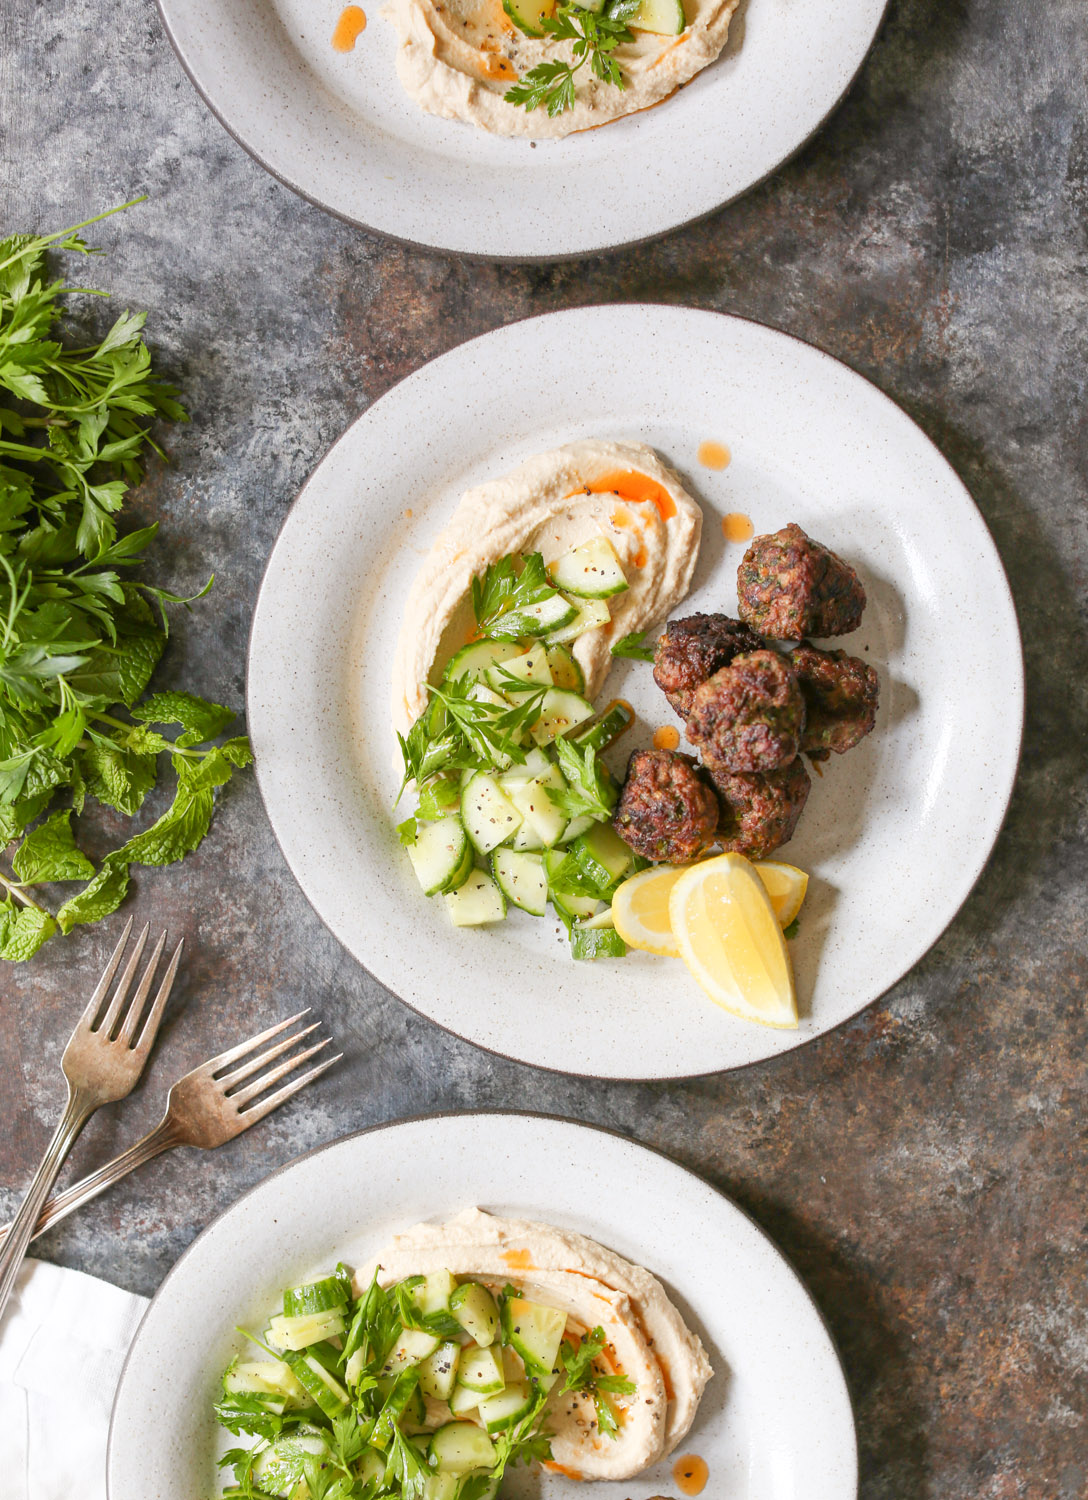 Overhead view of a plated serving of lamb kofta with hummus, cucumbers, and lemon wedges.